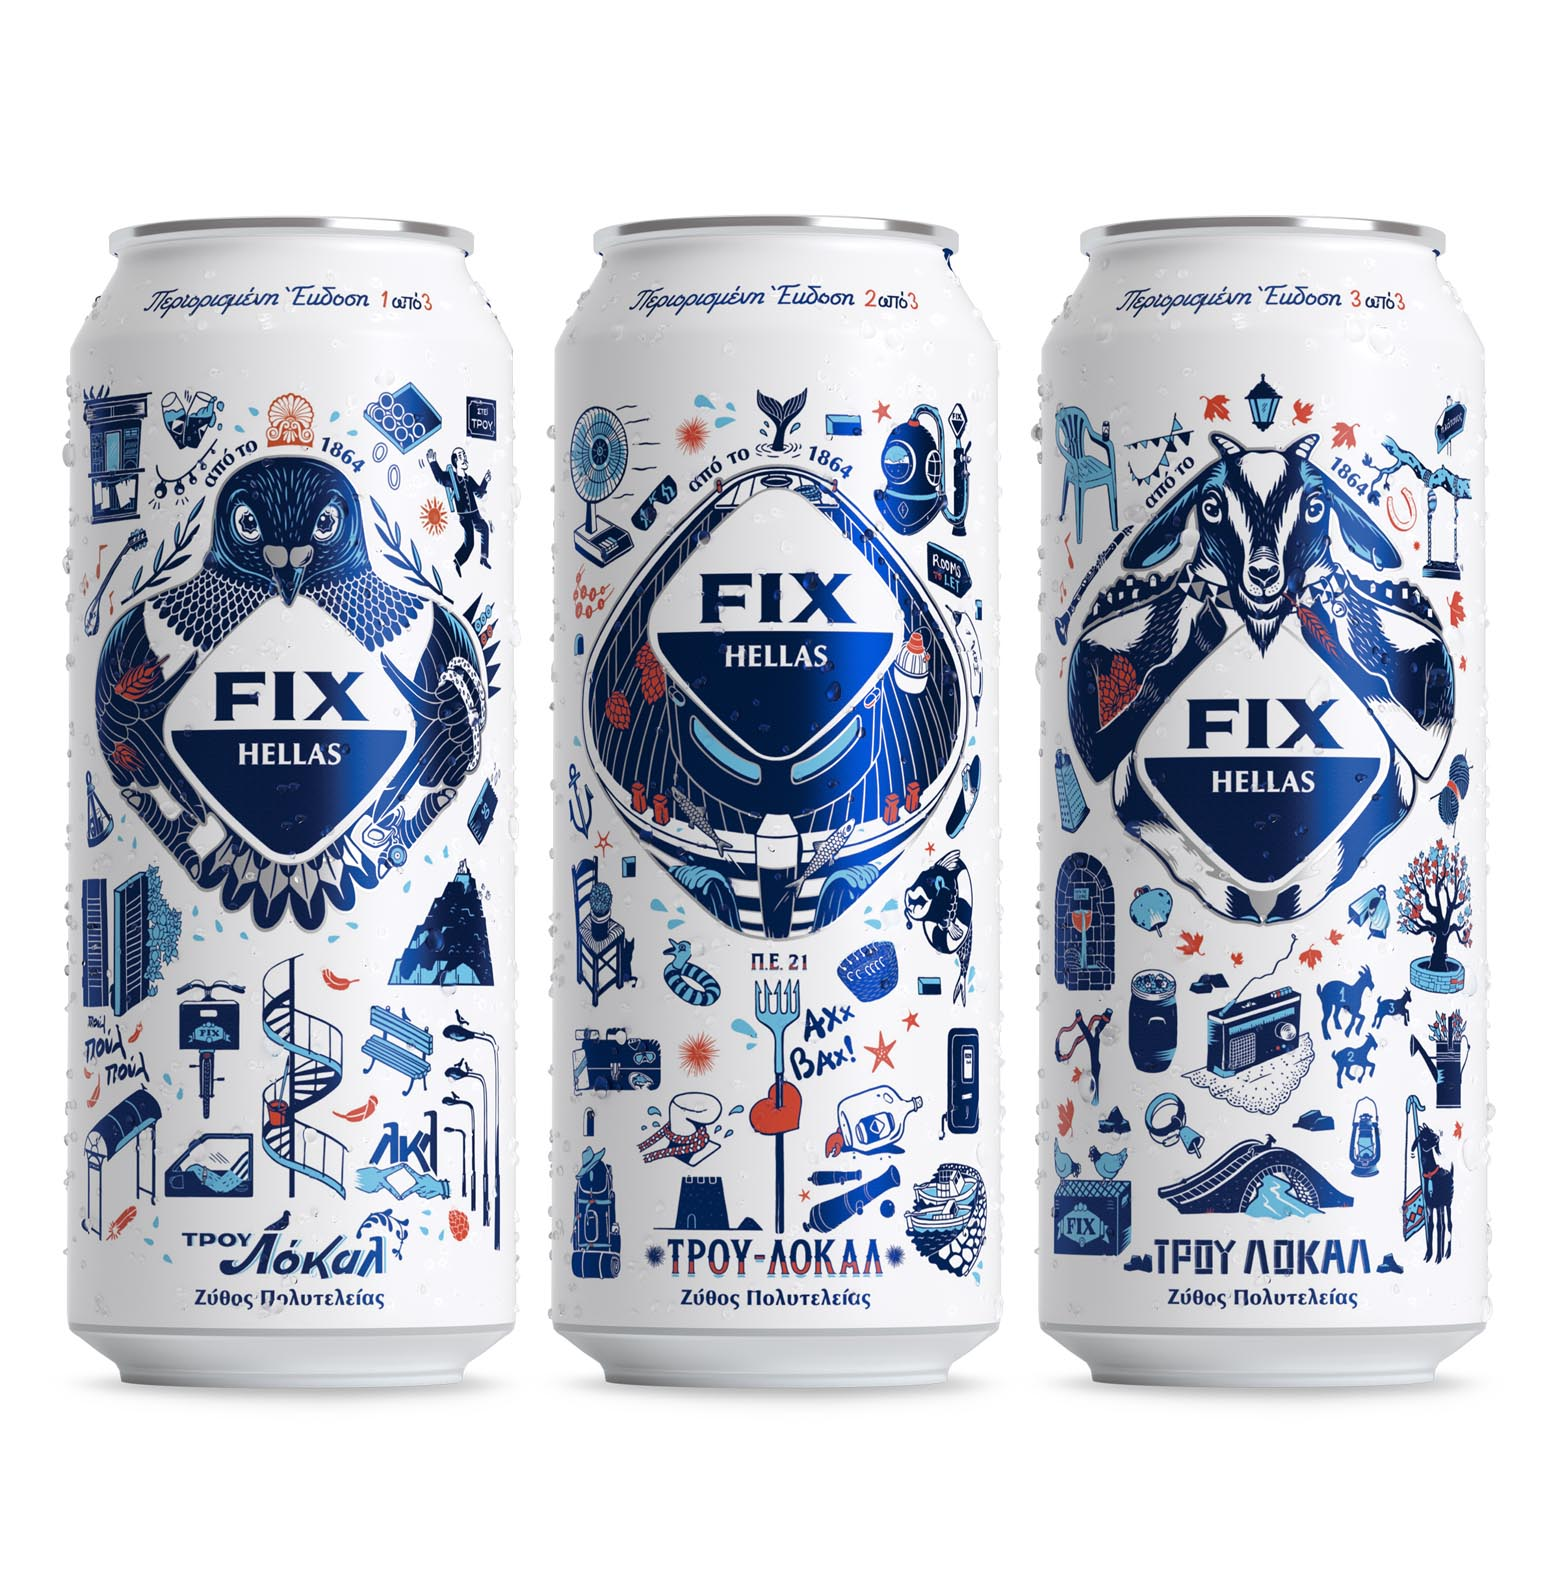 FIX Hellas Limited Edition Packaging by Luminous Design